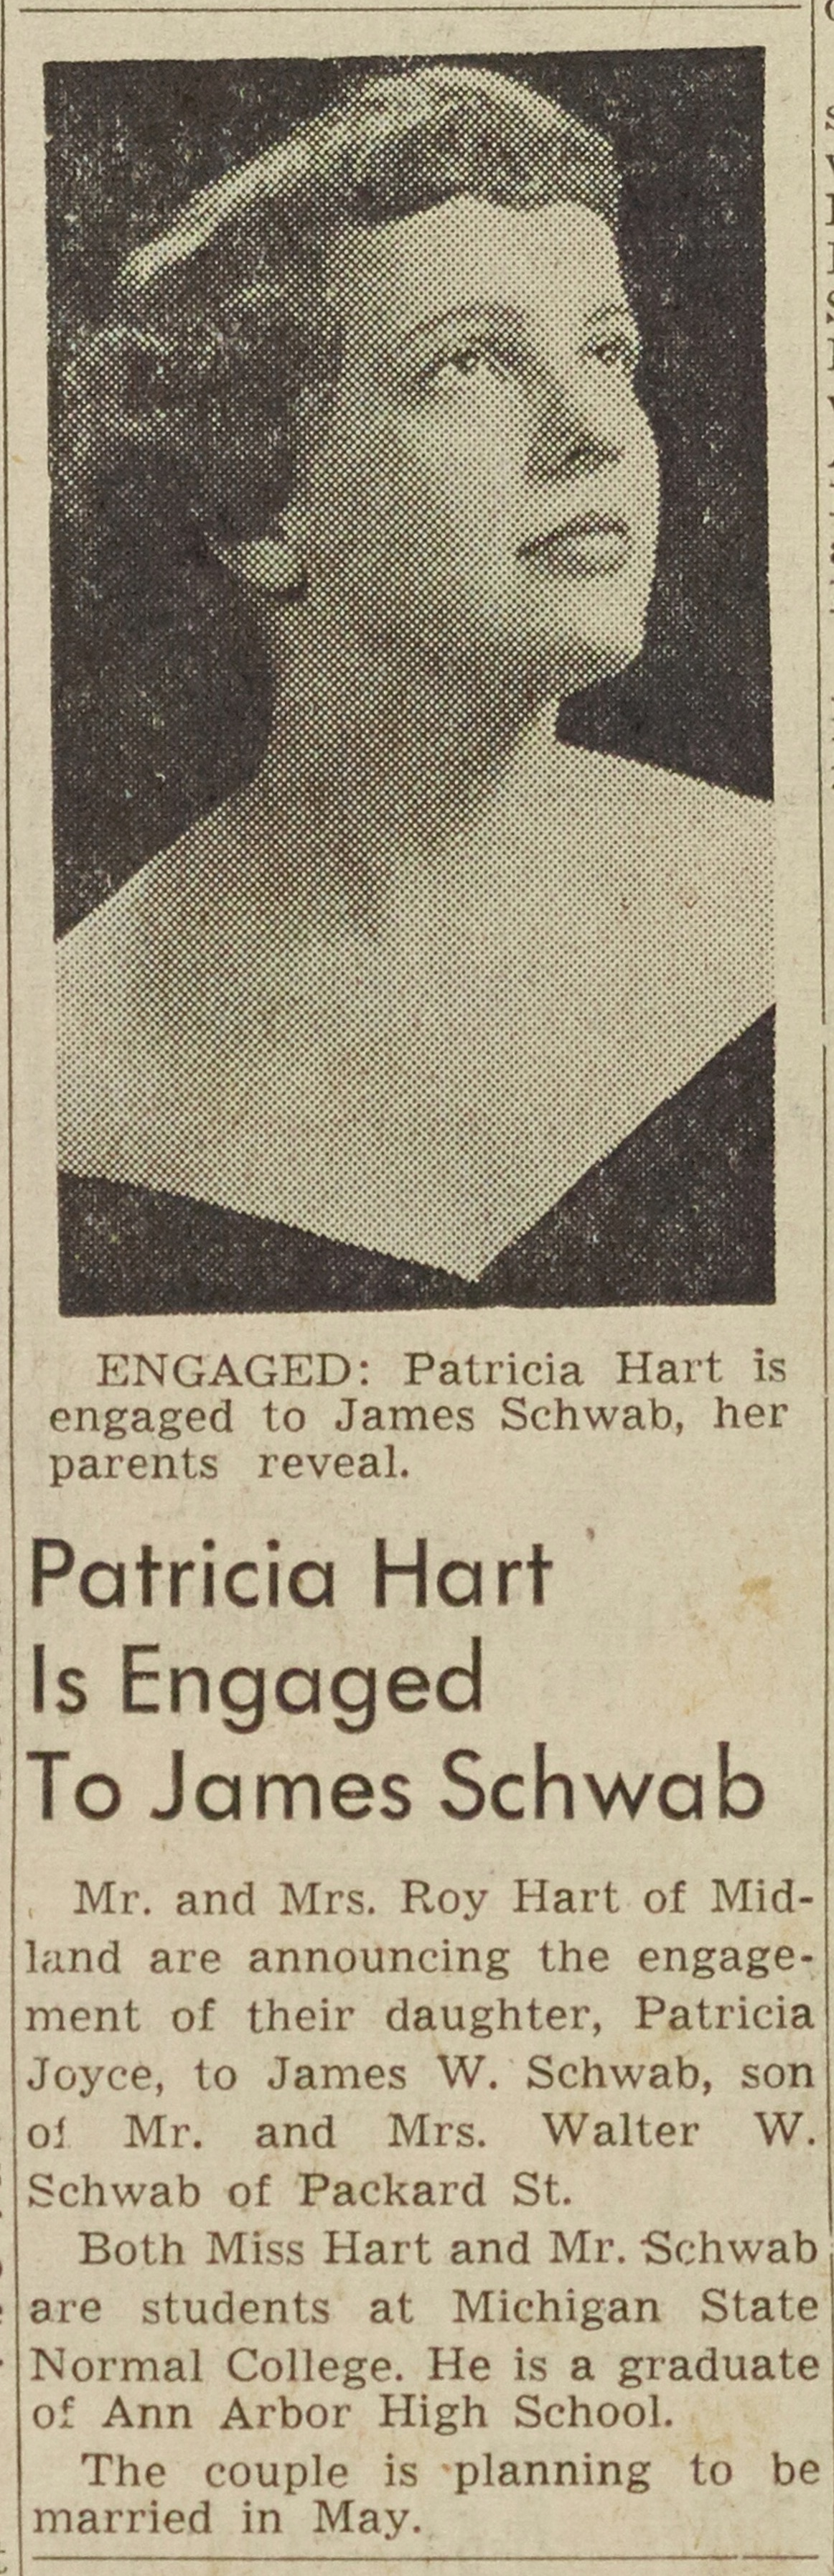 Patricia Hart Is Engaged To James Schwab image